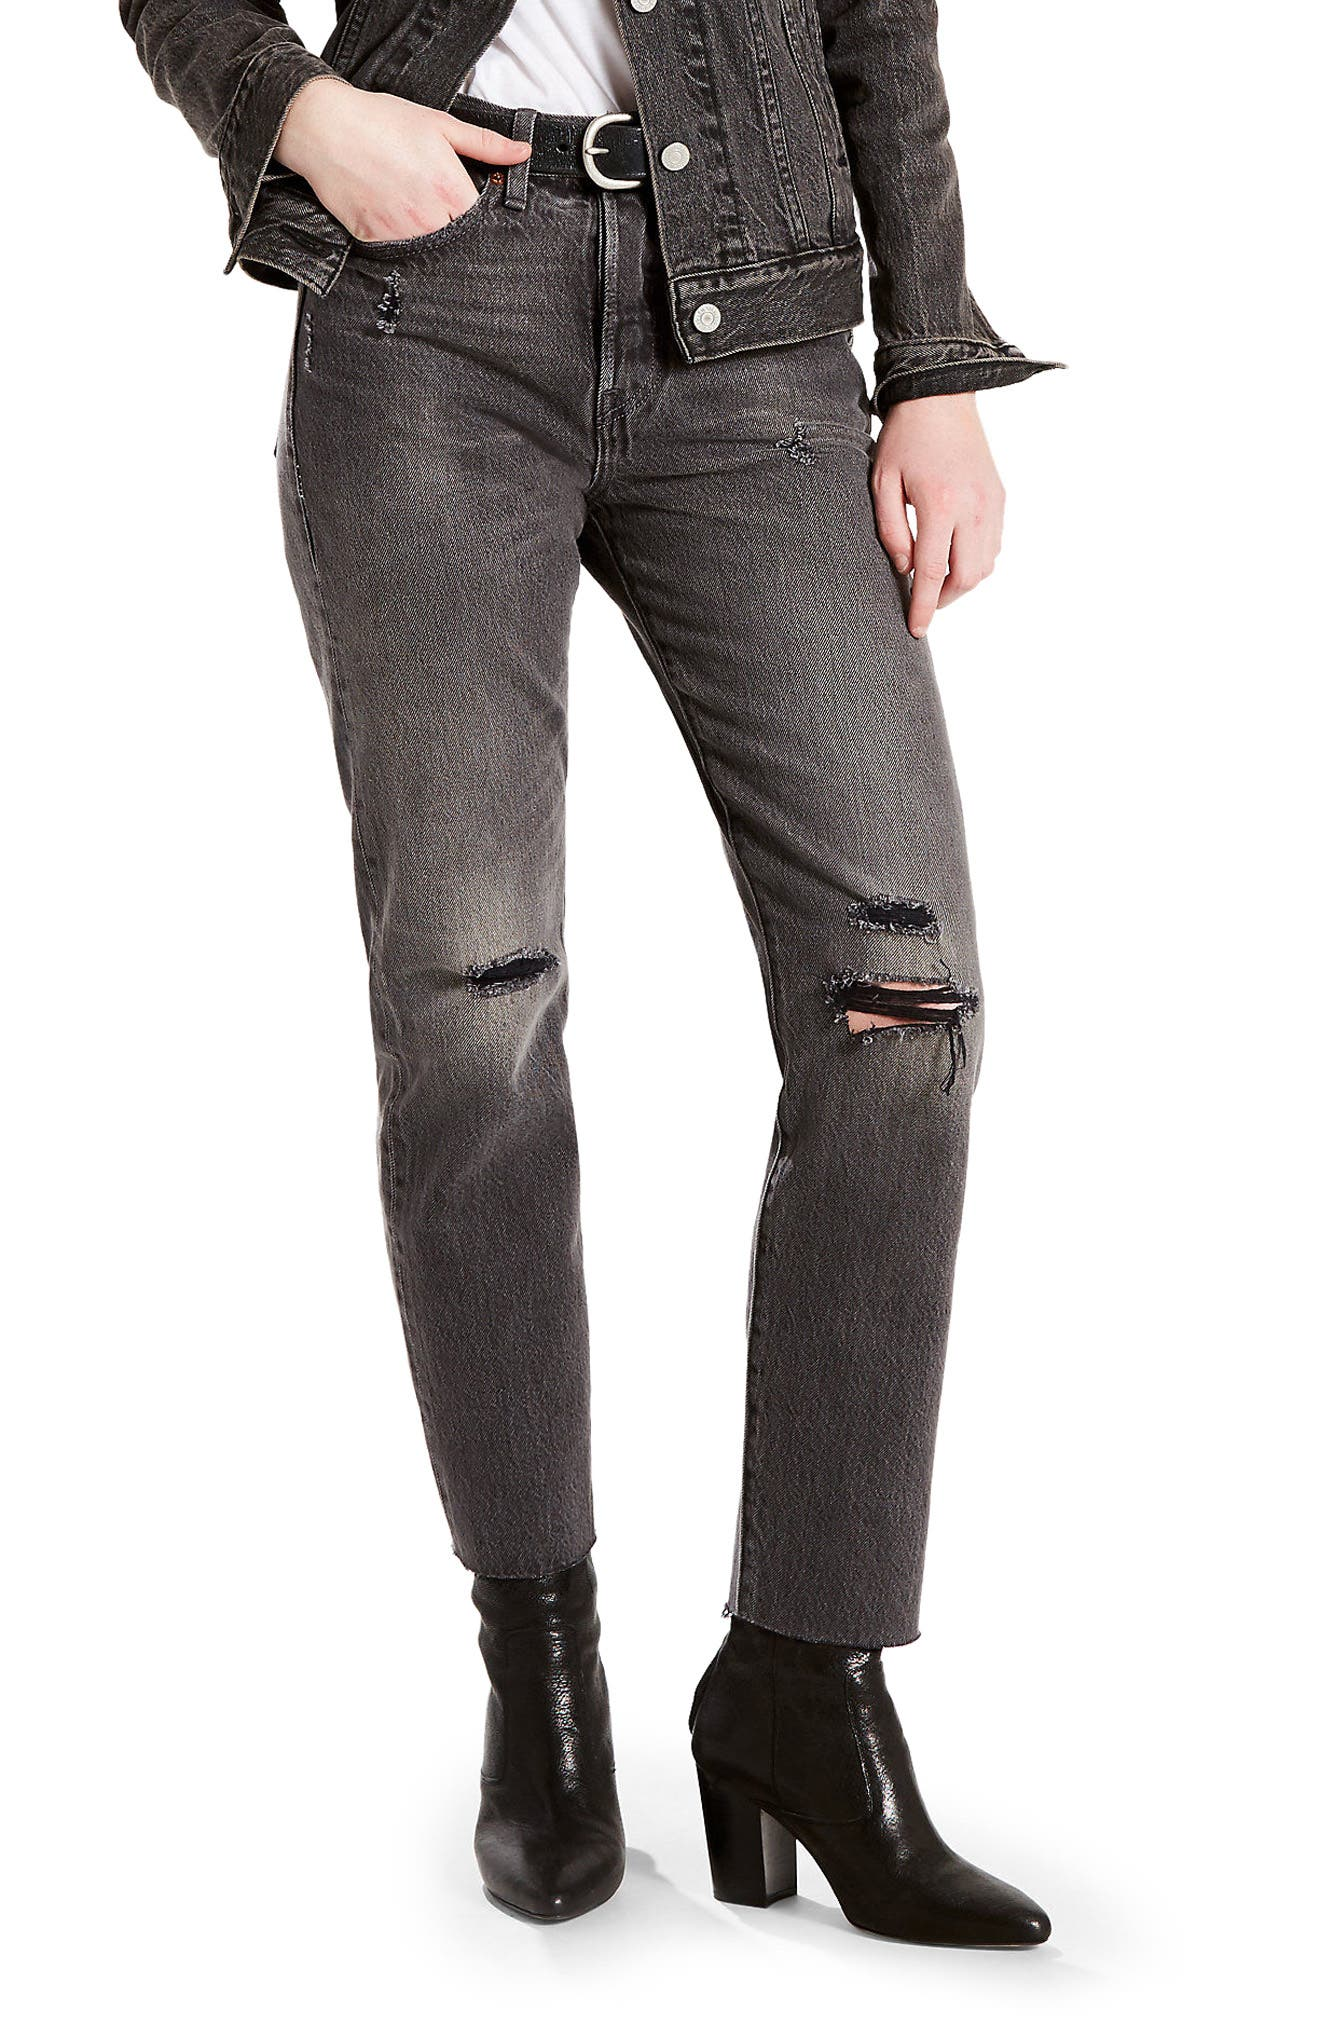 Wedgie Icon Distressed Straight Leg Jeans,                         Main,                         color, Grey Tumble